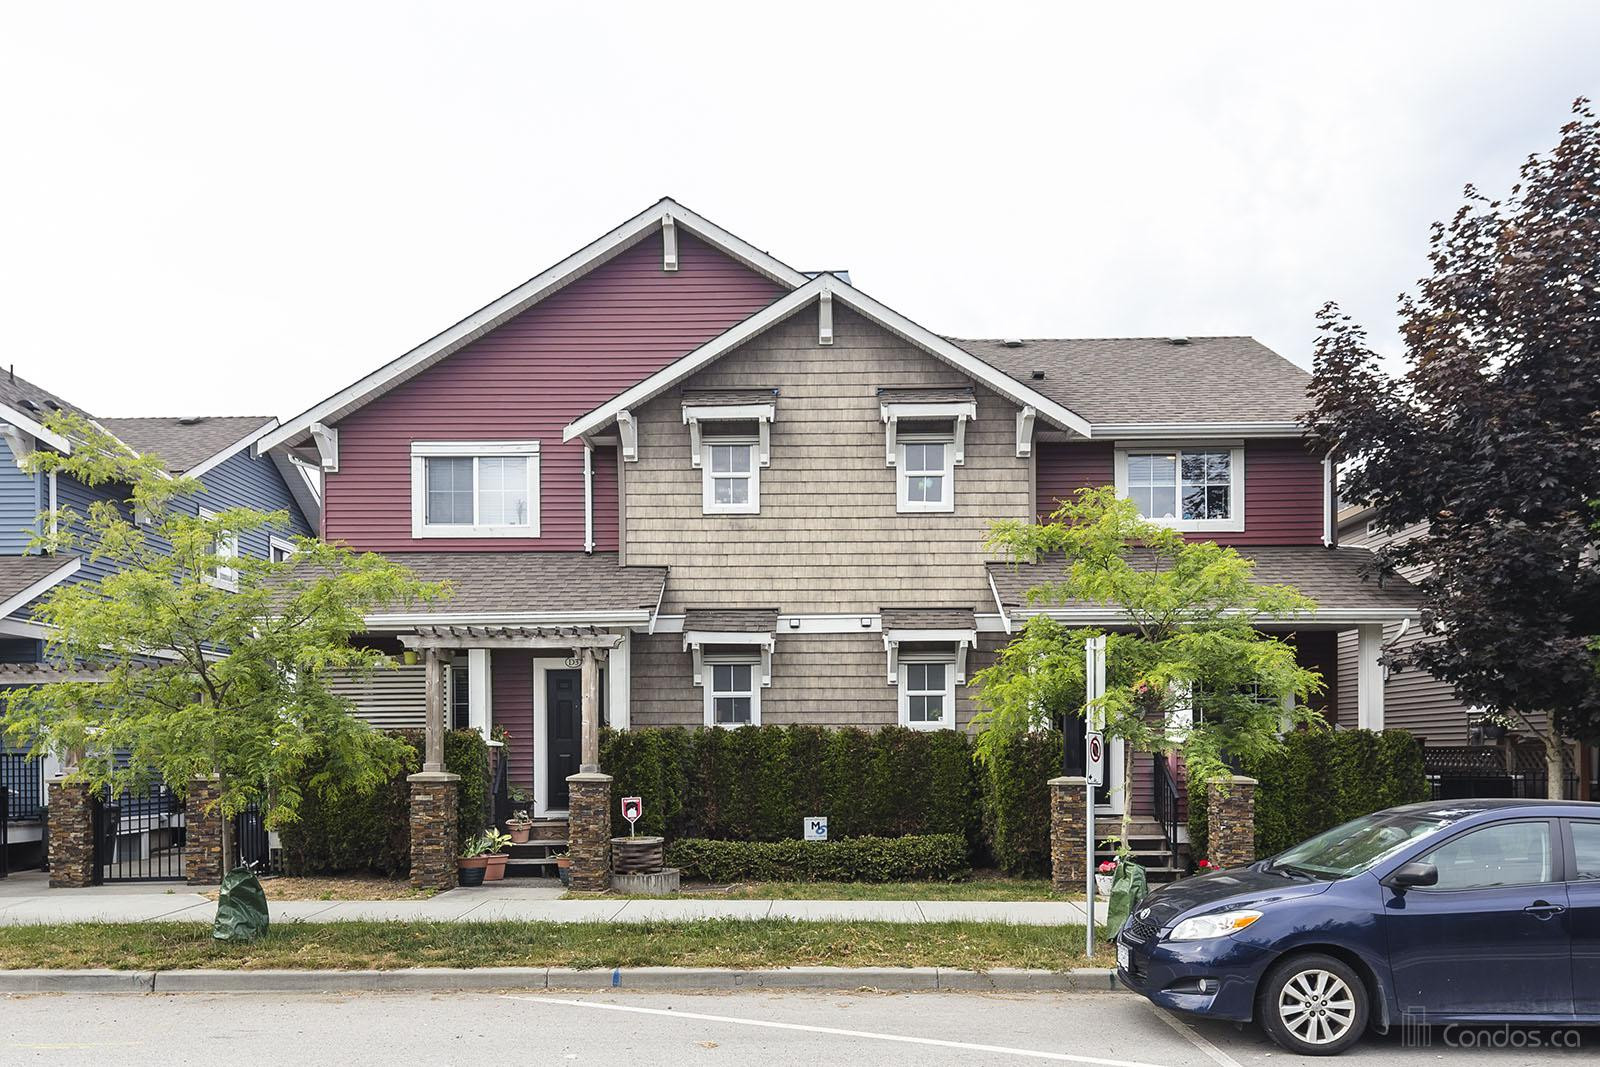 Rhapsody Hill at 19319 72a Ave, Surrey 0